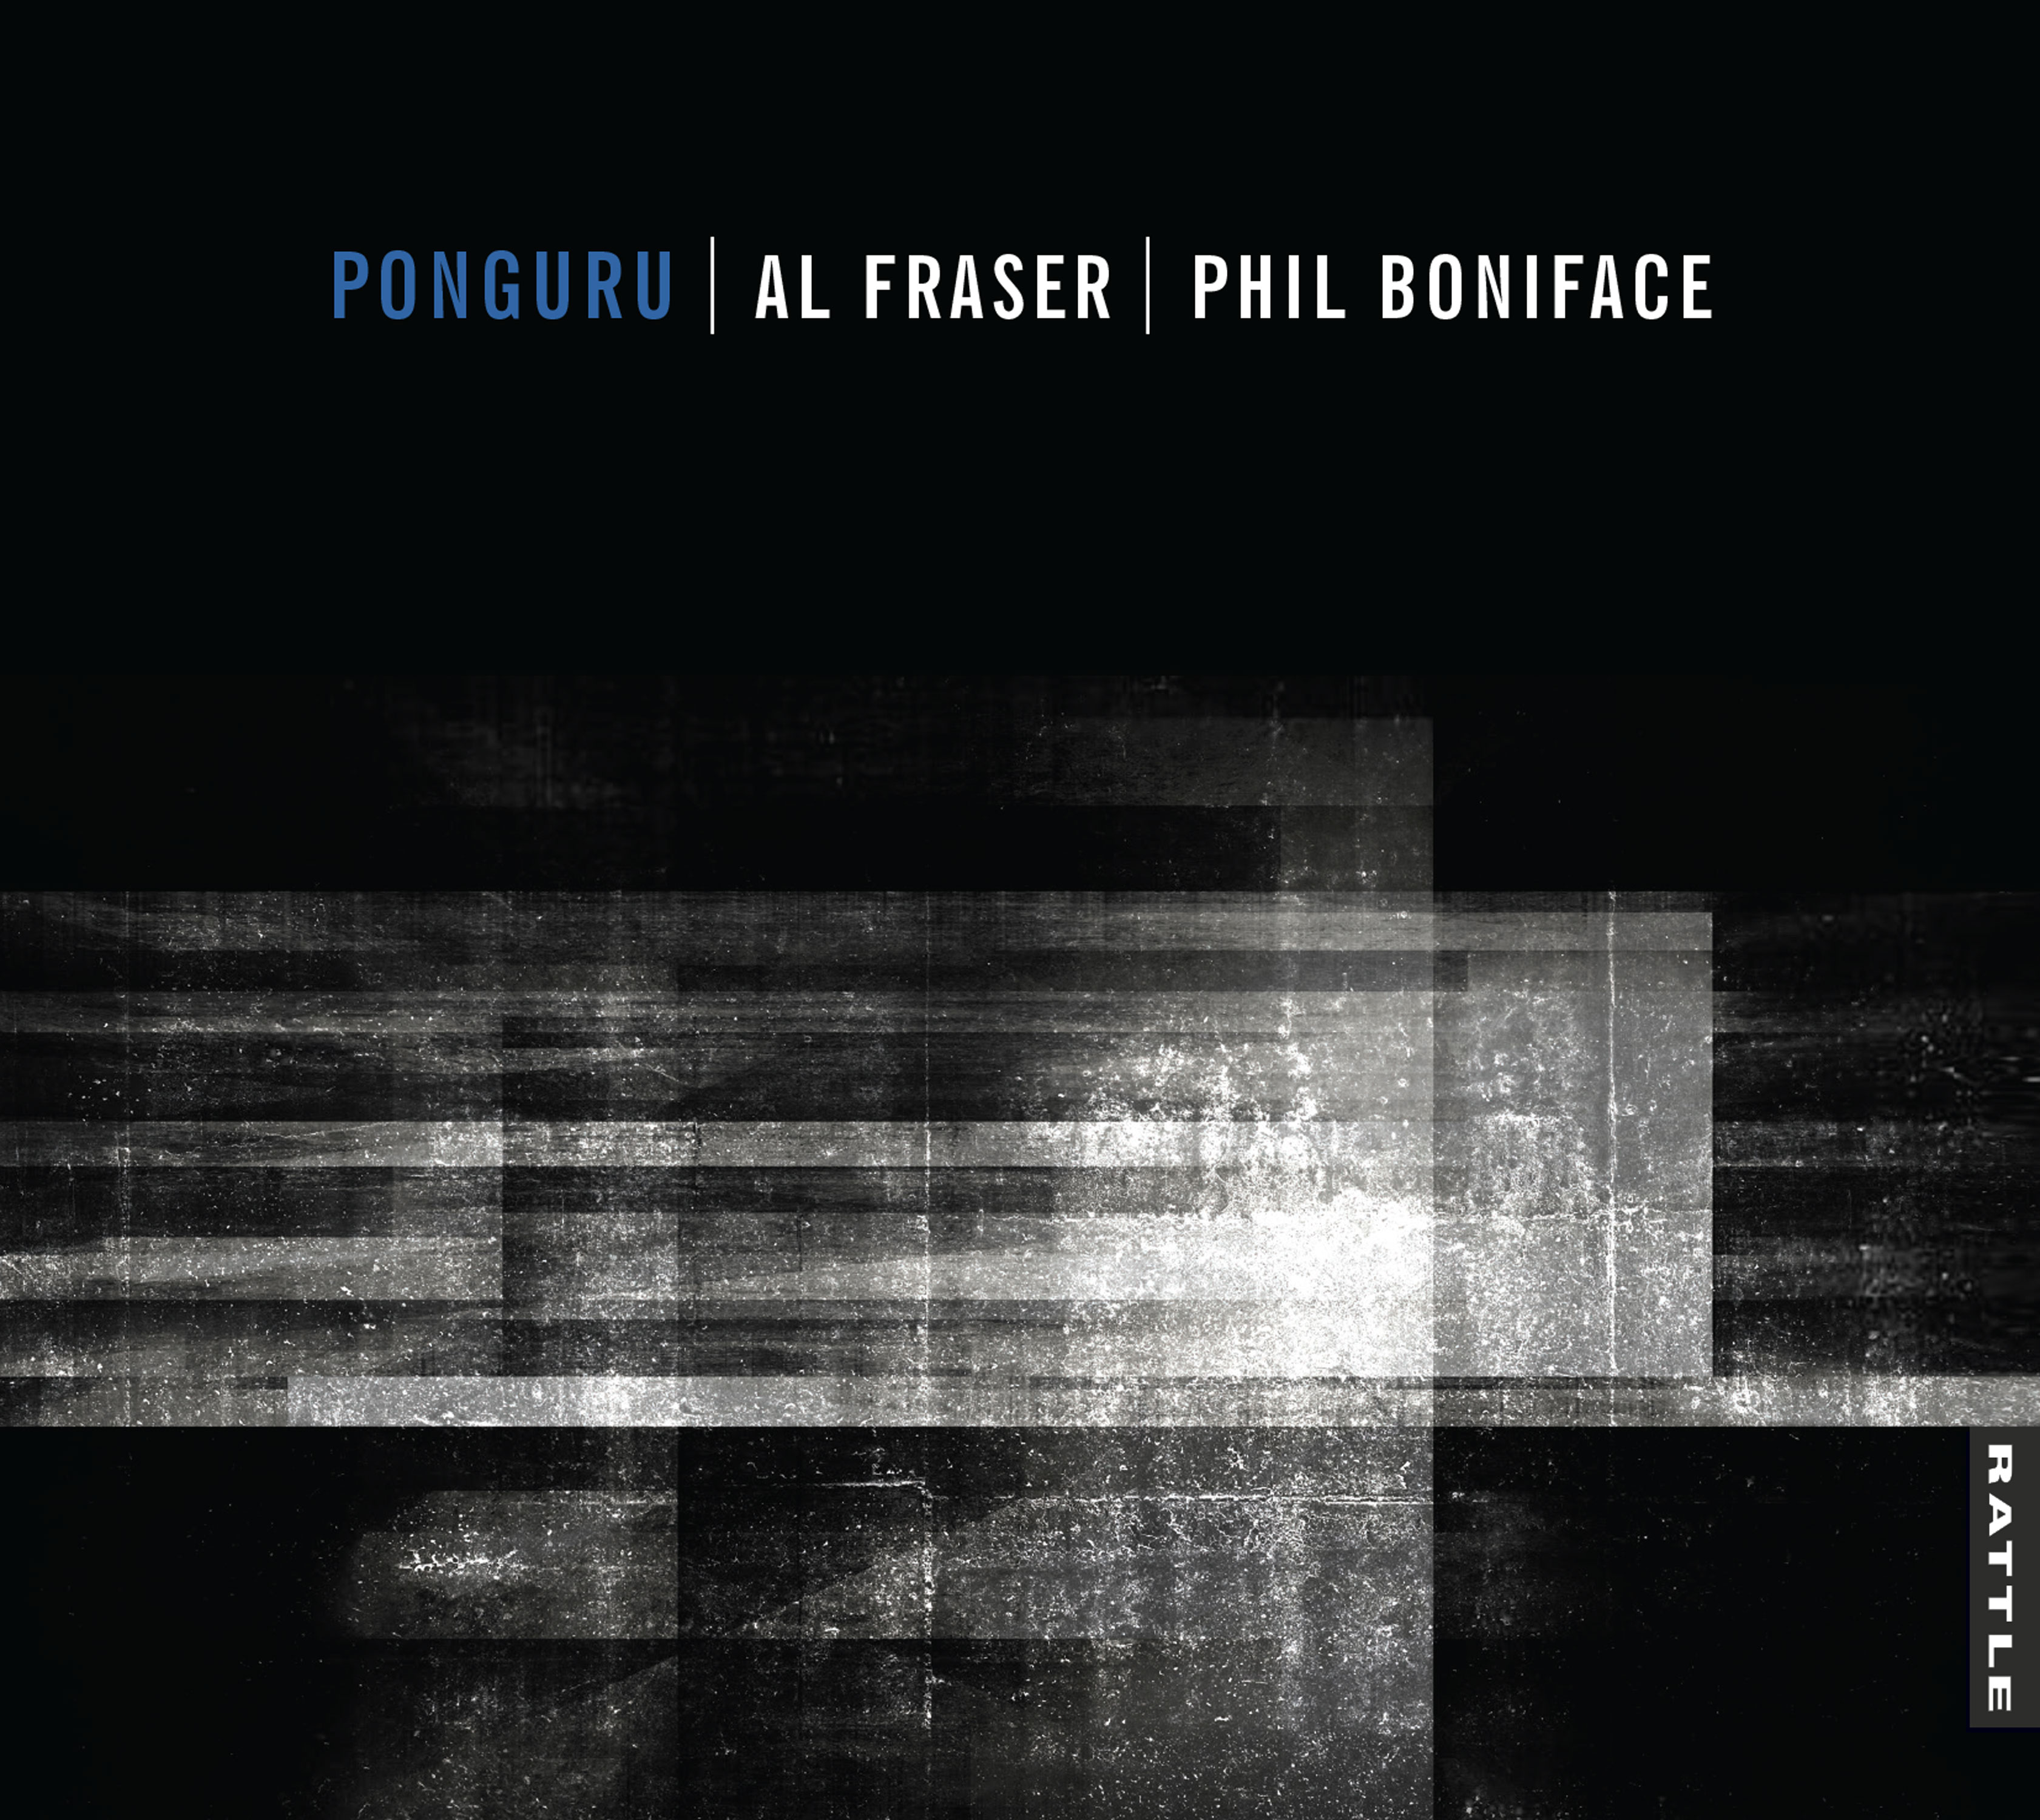 Al Fraser and Phil Boniface | Ponguru - downloadable MP3 ALBUM